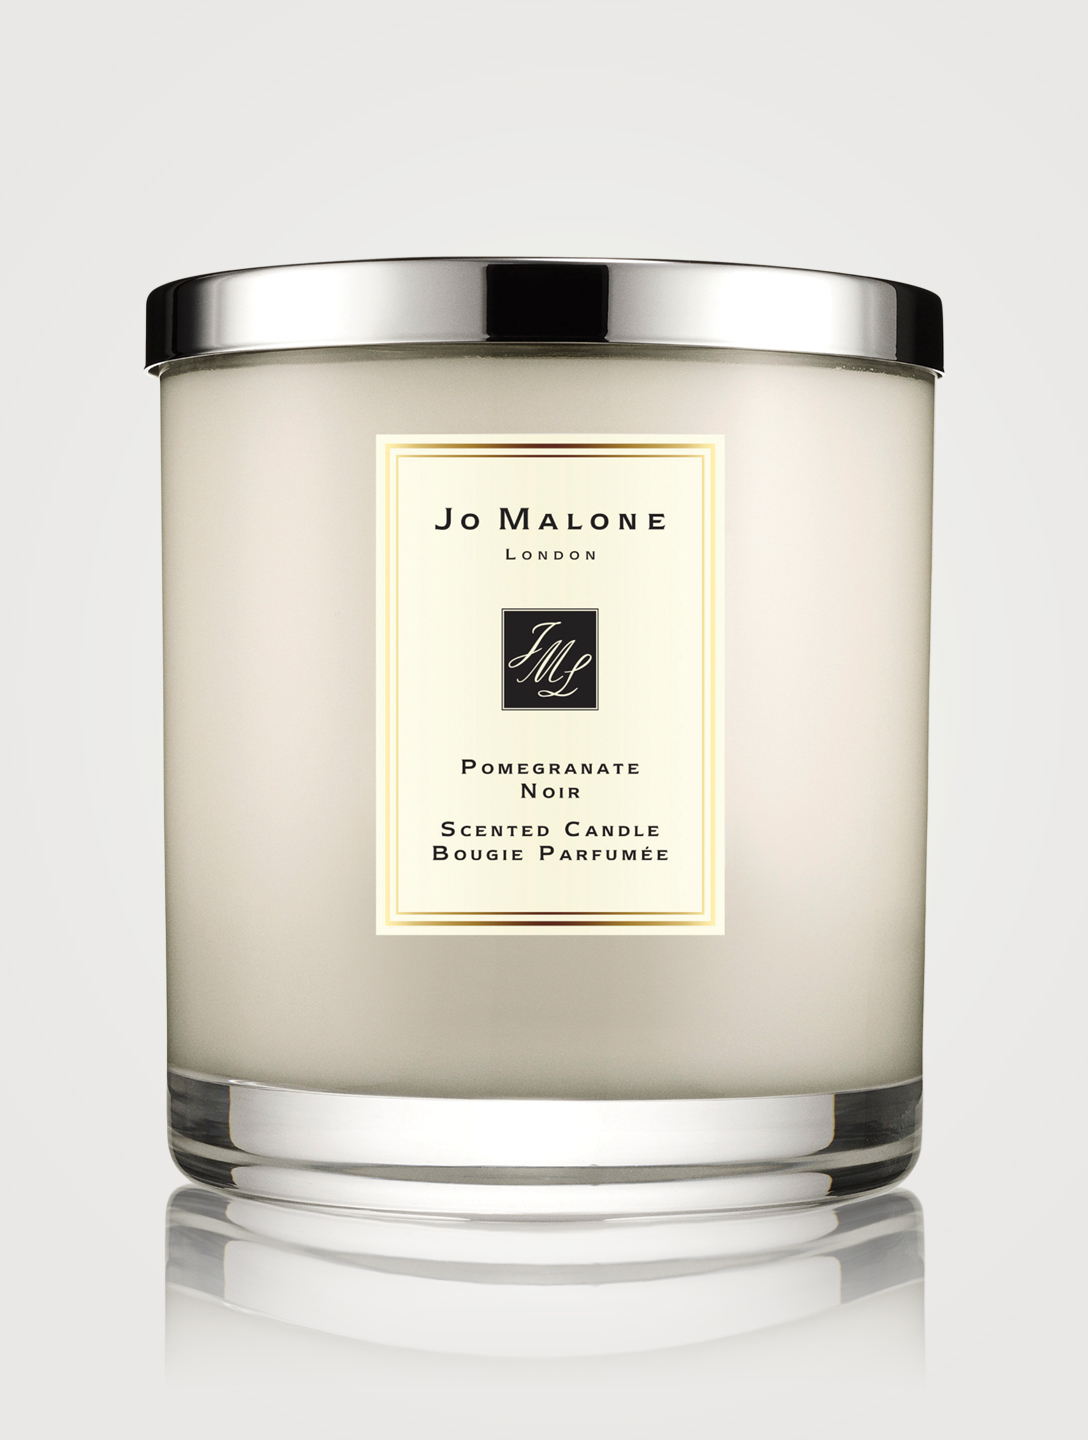 JO MALONE LONDON Pomegranate Noir Luxury Candle Beauty